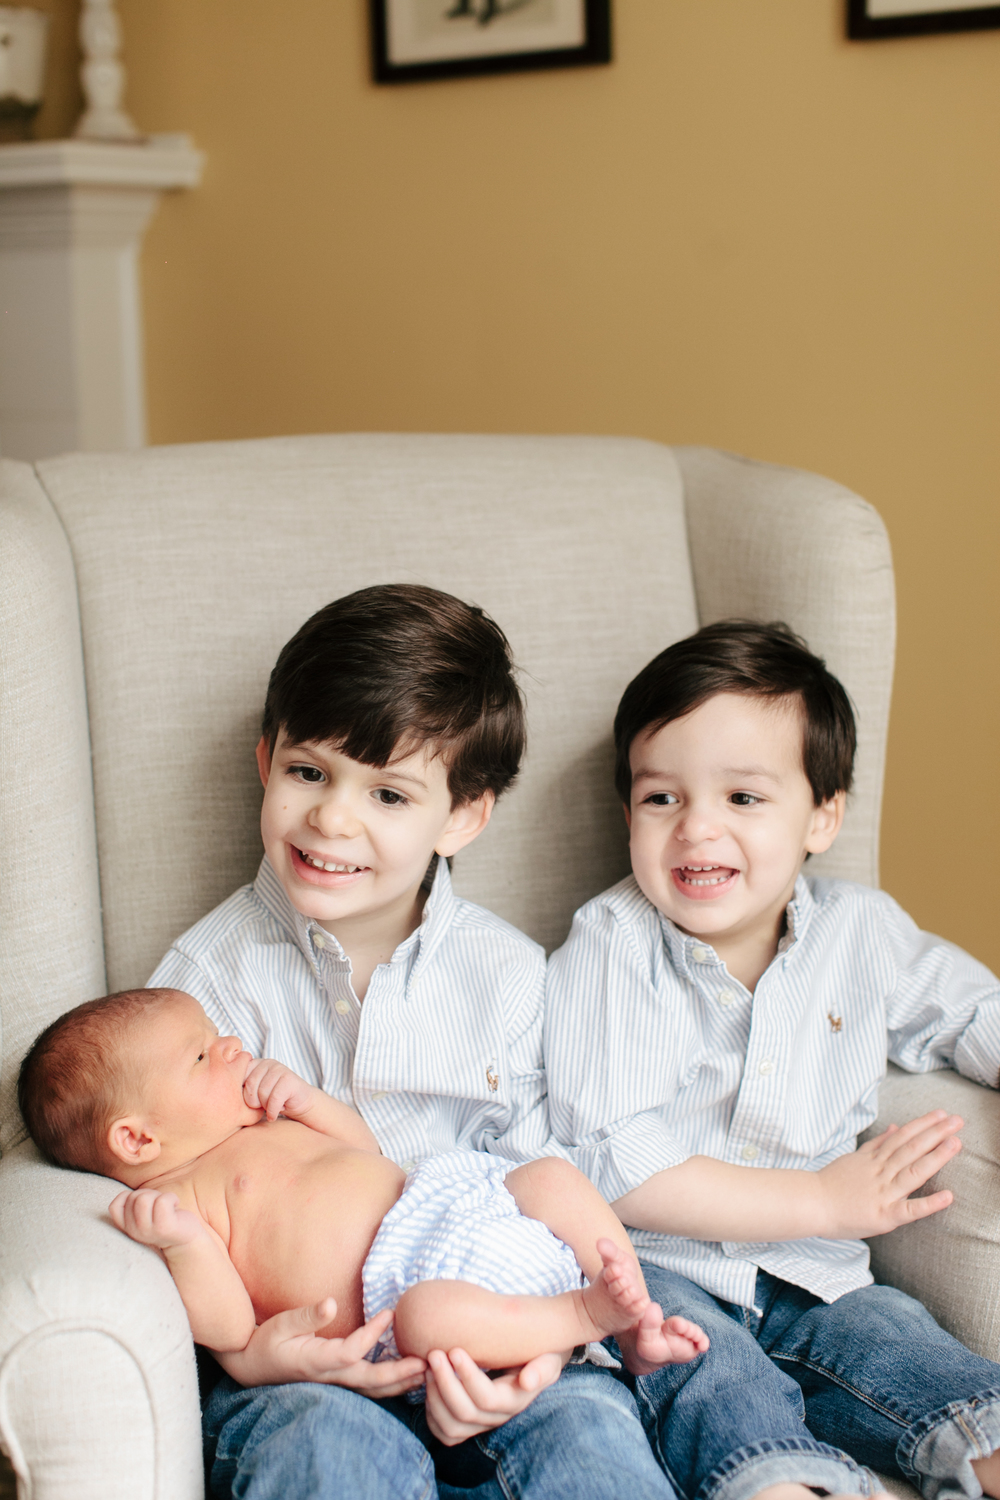 Atlanta-Newborn-and-Family-Photographer-Kathryn-McCrary-Photography-Makris-23.jpg